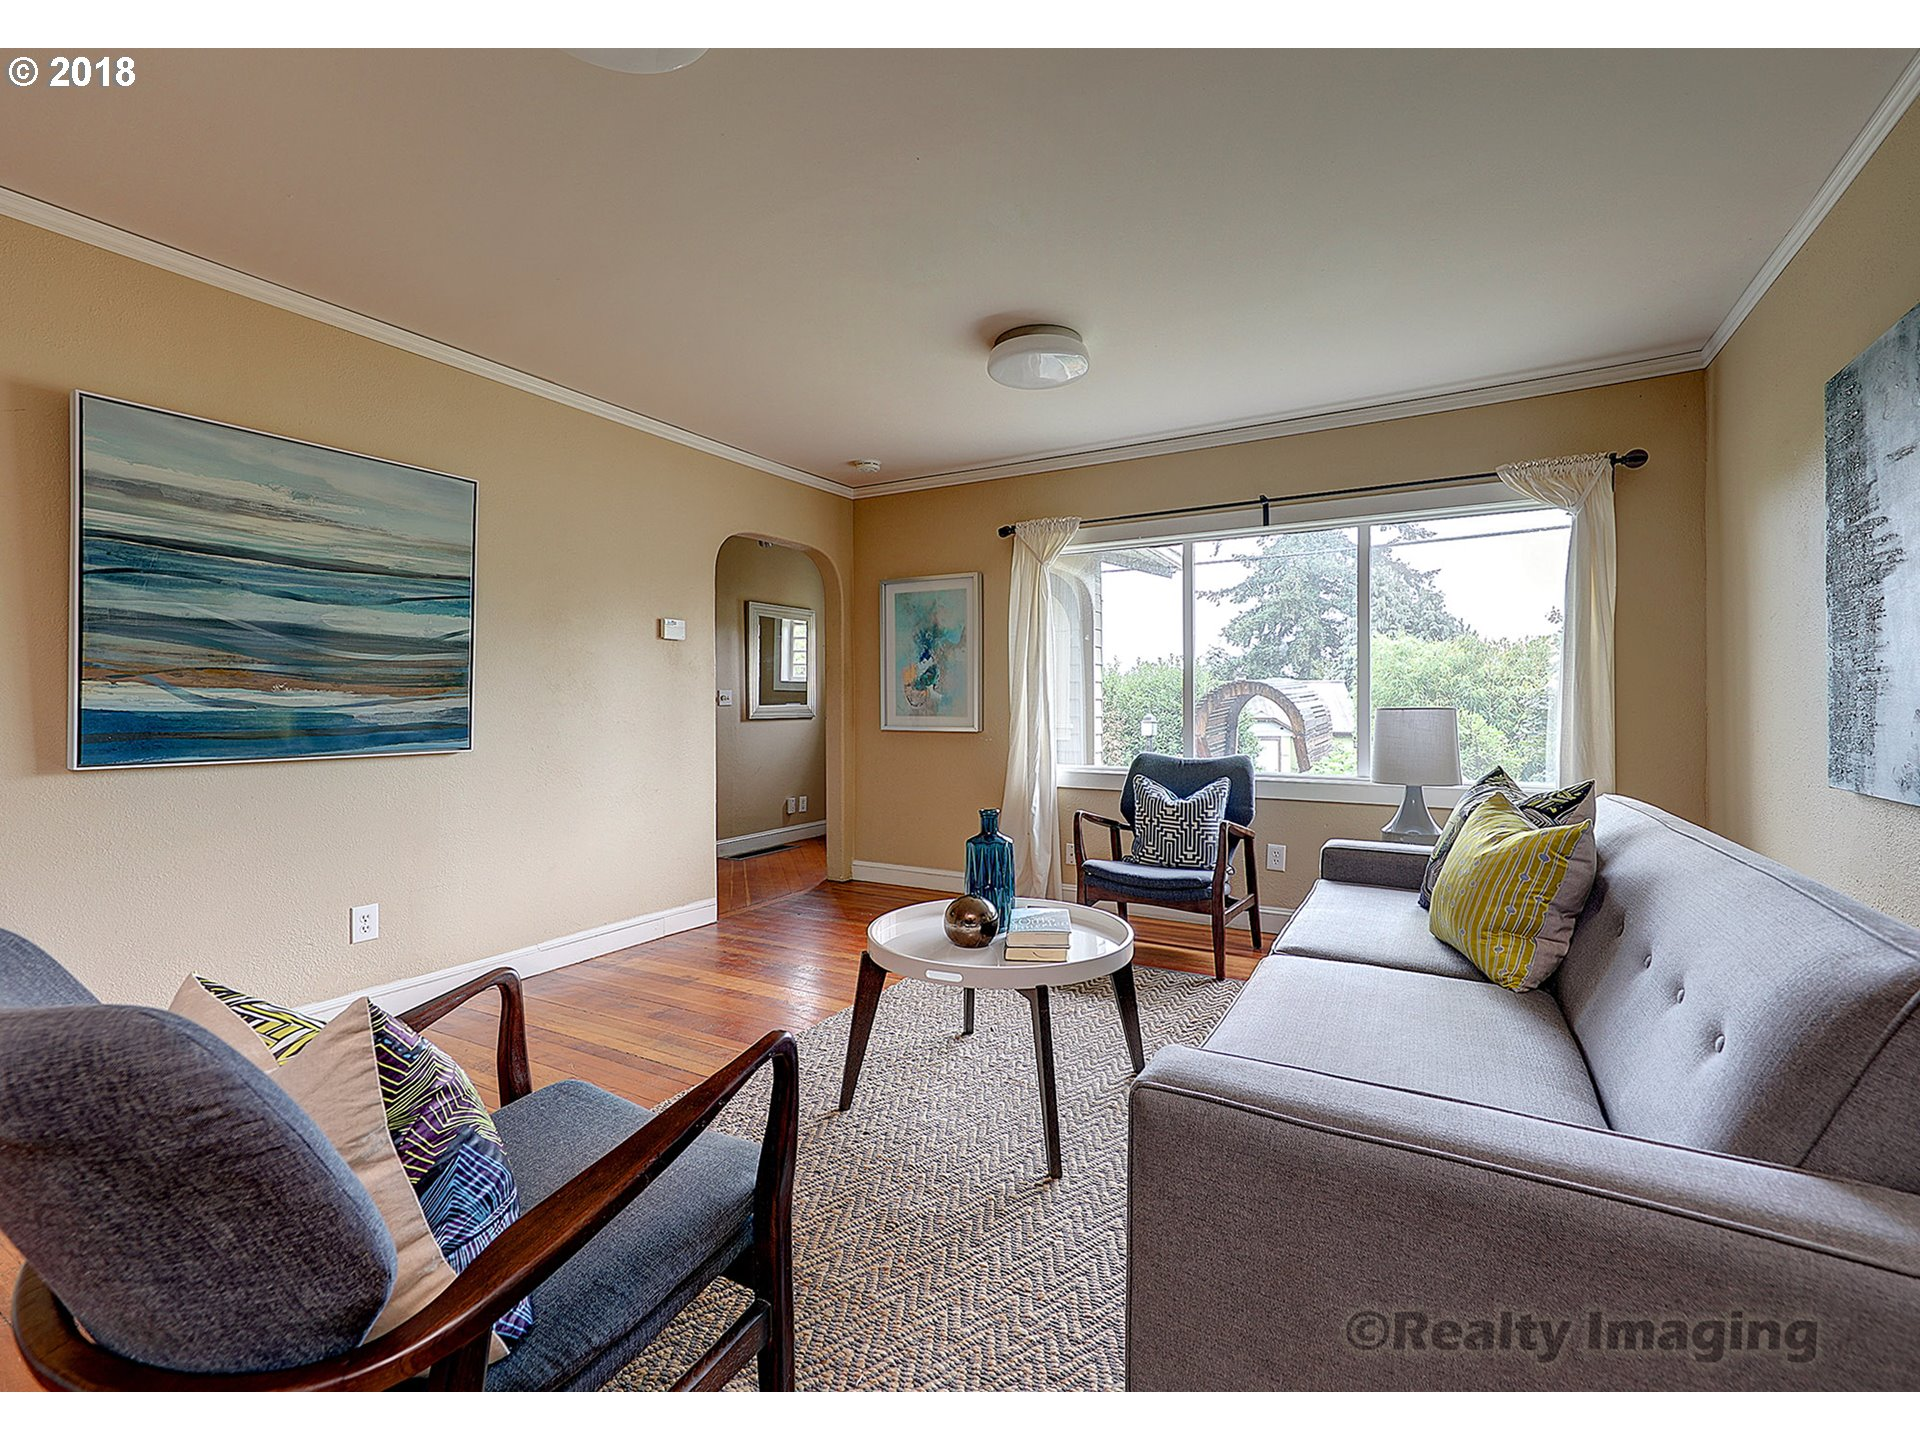 2440 sq. ft 4 bedrooms 3 bathrooms  House For Sale,Portland, OR